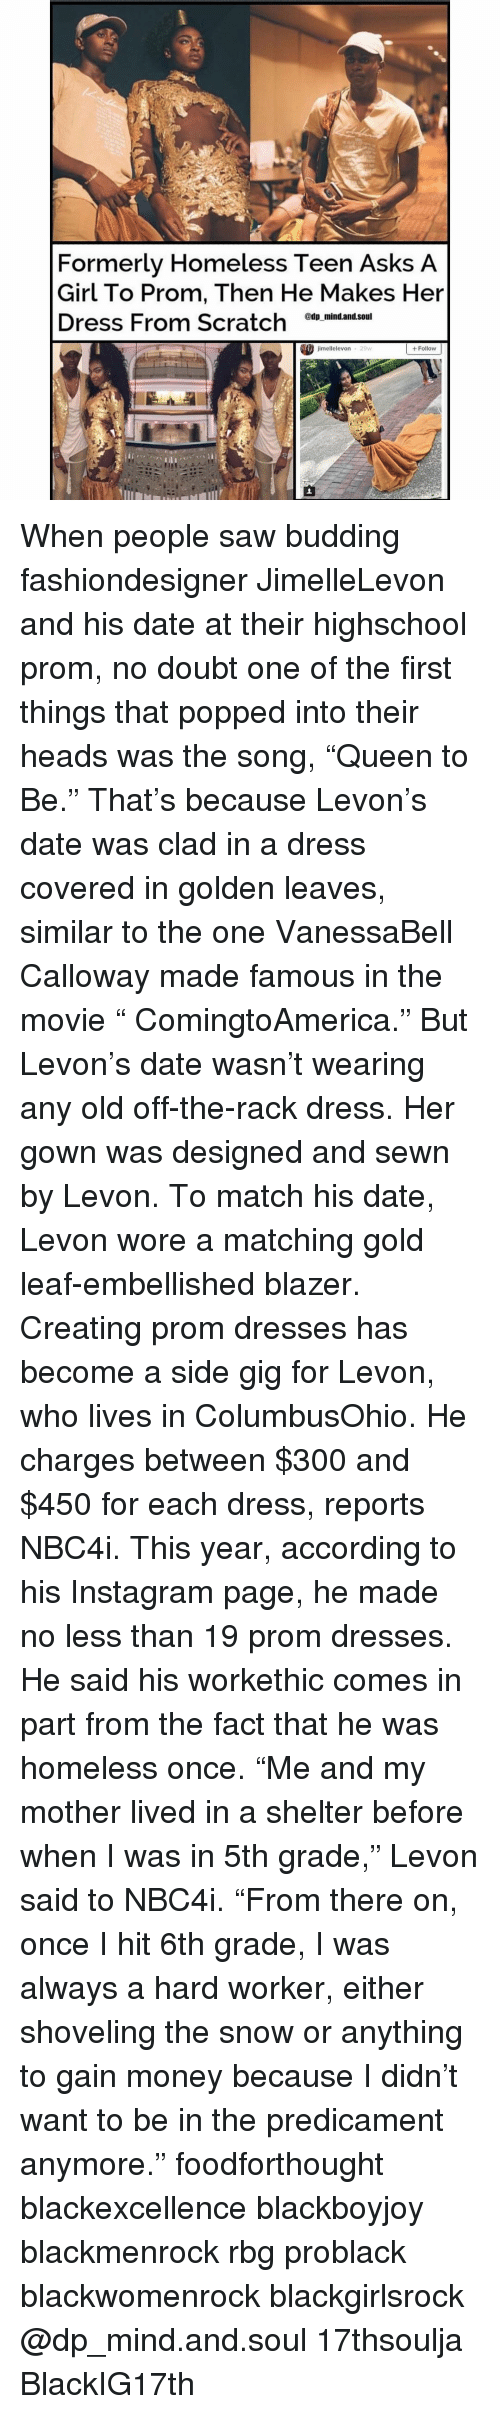 "rbg: Formerly Homeless Teen Asks A  Girl To Prom, Then He Makes Her  Dress From Scratch  @tip mind.and.Soul  jimellelevon  Follow  29W When people saw budding fashiondesigner JimelleLevon and his date at their highschool prom, no doubt one of the first things that popped into their heads was the song, ""Queen to Be."" That's because Levon's date was clad in a dress covered in golden leaves, similar to the one VanessaBell Calloway made famous in the movie "" ComingtoAmerica."" But Levon's date wasn't wearing any old off-the-rack dress. Her gown was designed and sewn by Levon. To match his date, Levon wore a matching gold leaf-embellished blazer. Creating prom dresses has become a side gig for Levon, who lives in ColumbusOhio. He charges between $300 and $450 for each dress, reports NBC4i. This year, according to his Instagram page, he made no less than 19 prom dresses. He said his workethic comes in part from the fact that he was homeless once. ""Me and my mother lived in a shelter before when I was in 5th grade,"" Levon said to NBC4i. ""From there on, once I hit 6th grade, I was always a hard worker, either shoveling the snow or anything to gain money because I didn't want to be in the predicament anymore."" foodforthought blackexcellence blackboyjoy blackmenrock rbg problack blackwomenrock blackgirlsrock @dp_mind.and.soul 17thsoulja BlackIG17th"